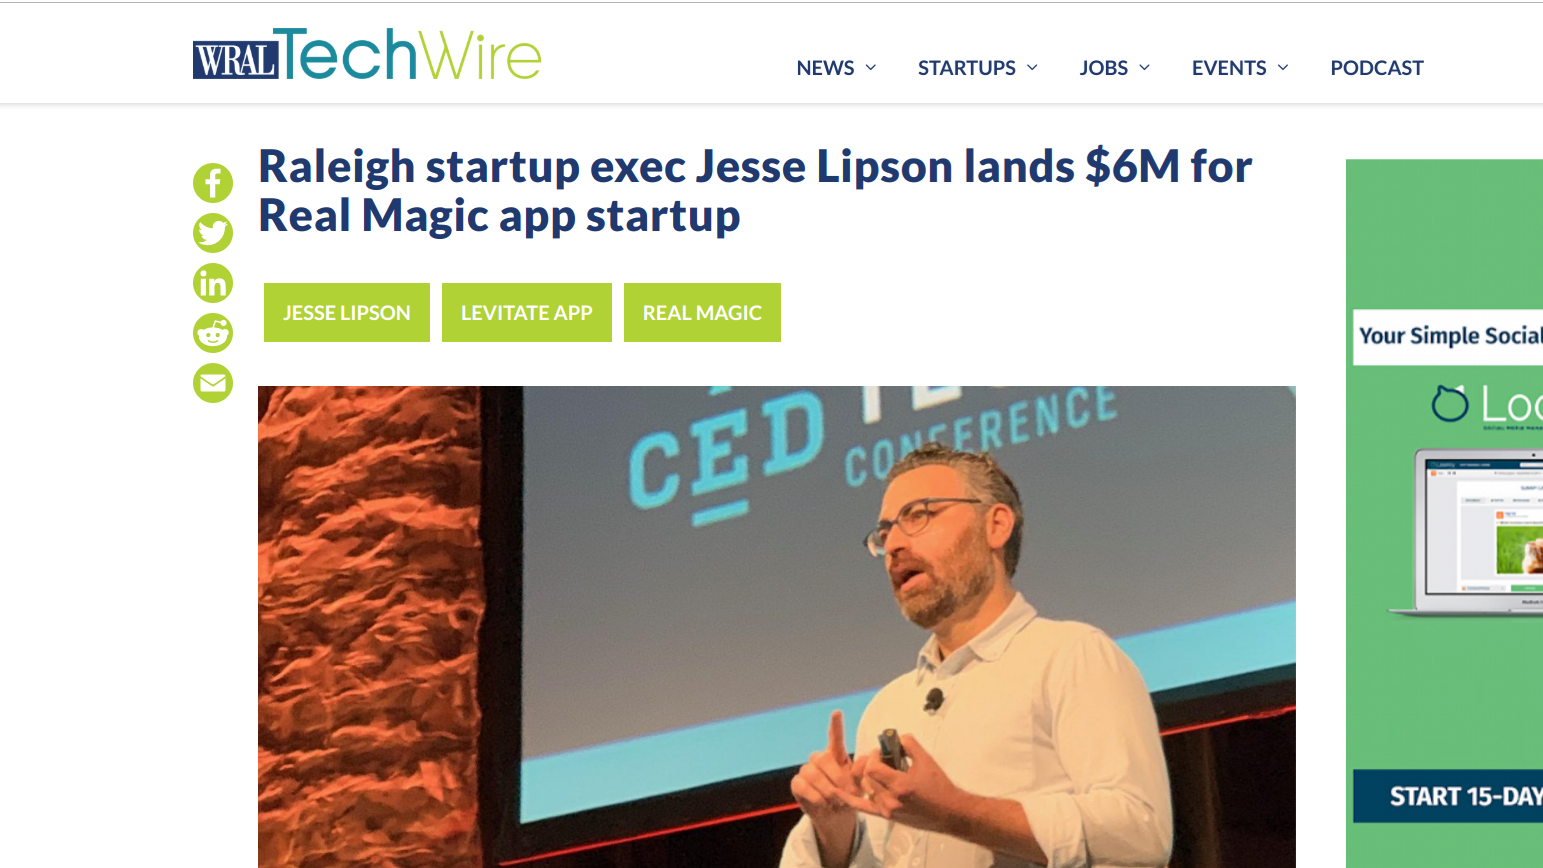 WRAL TechWire Jesse Lipson lands 6M in funding